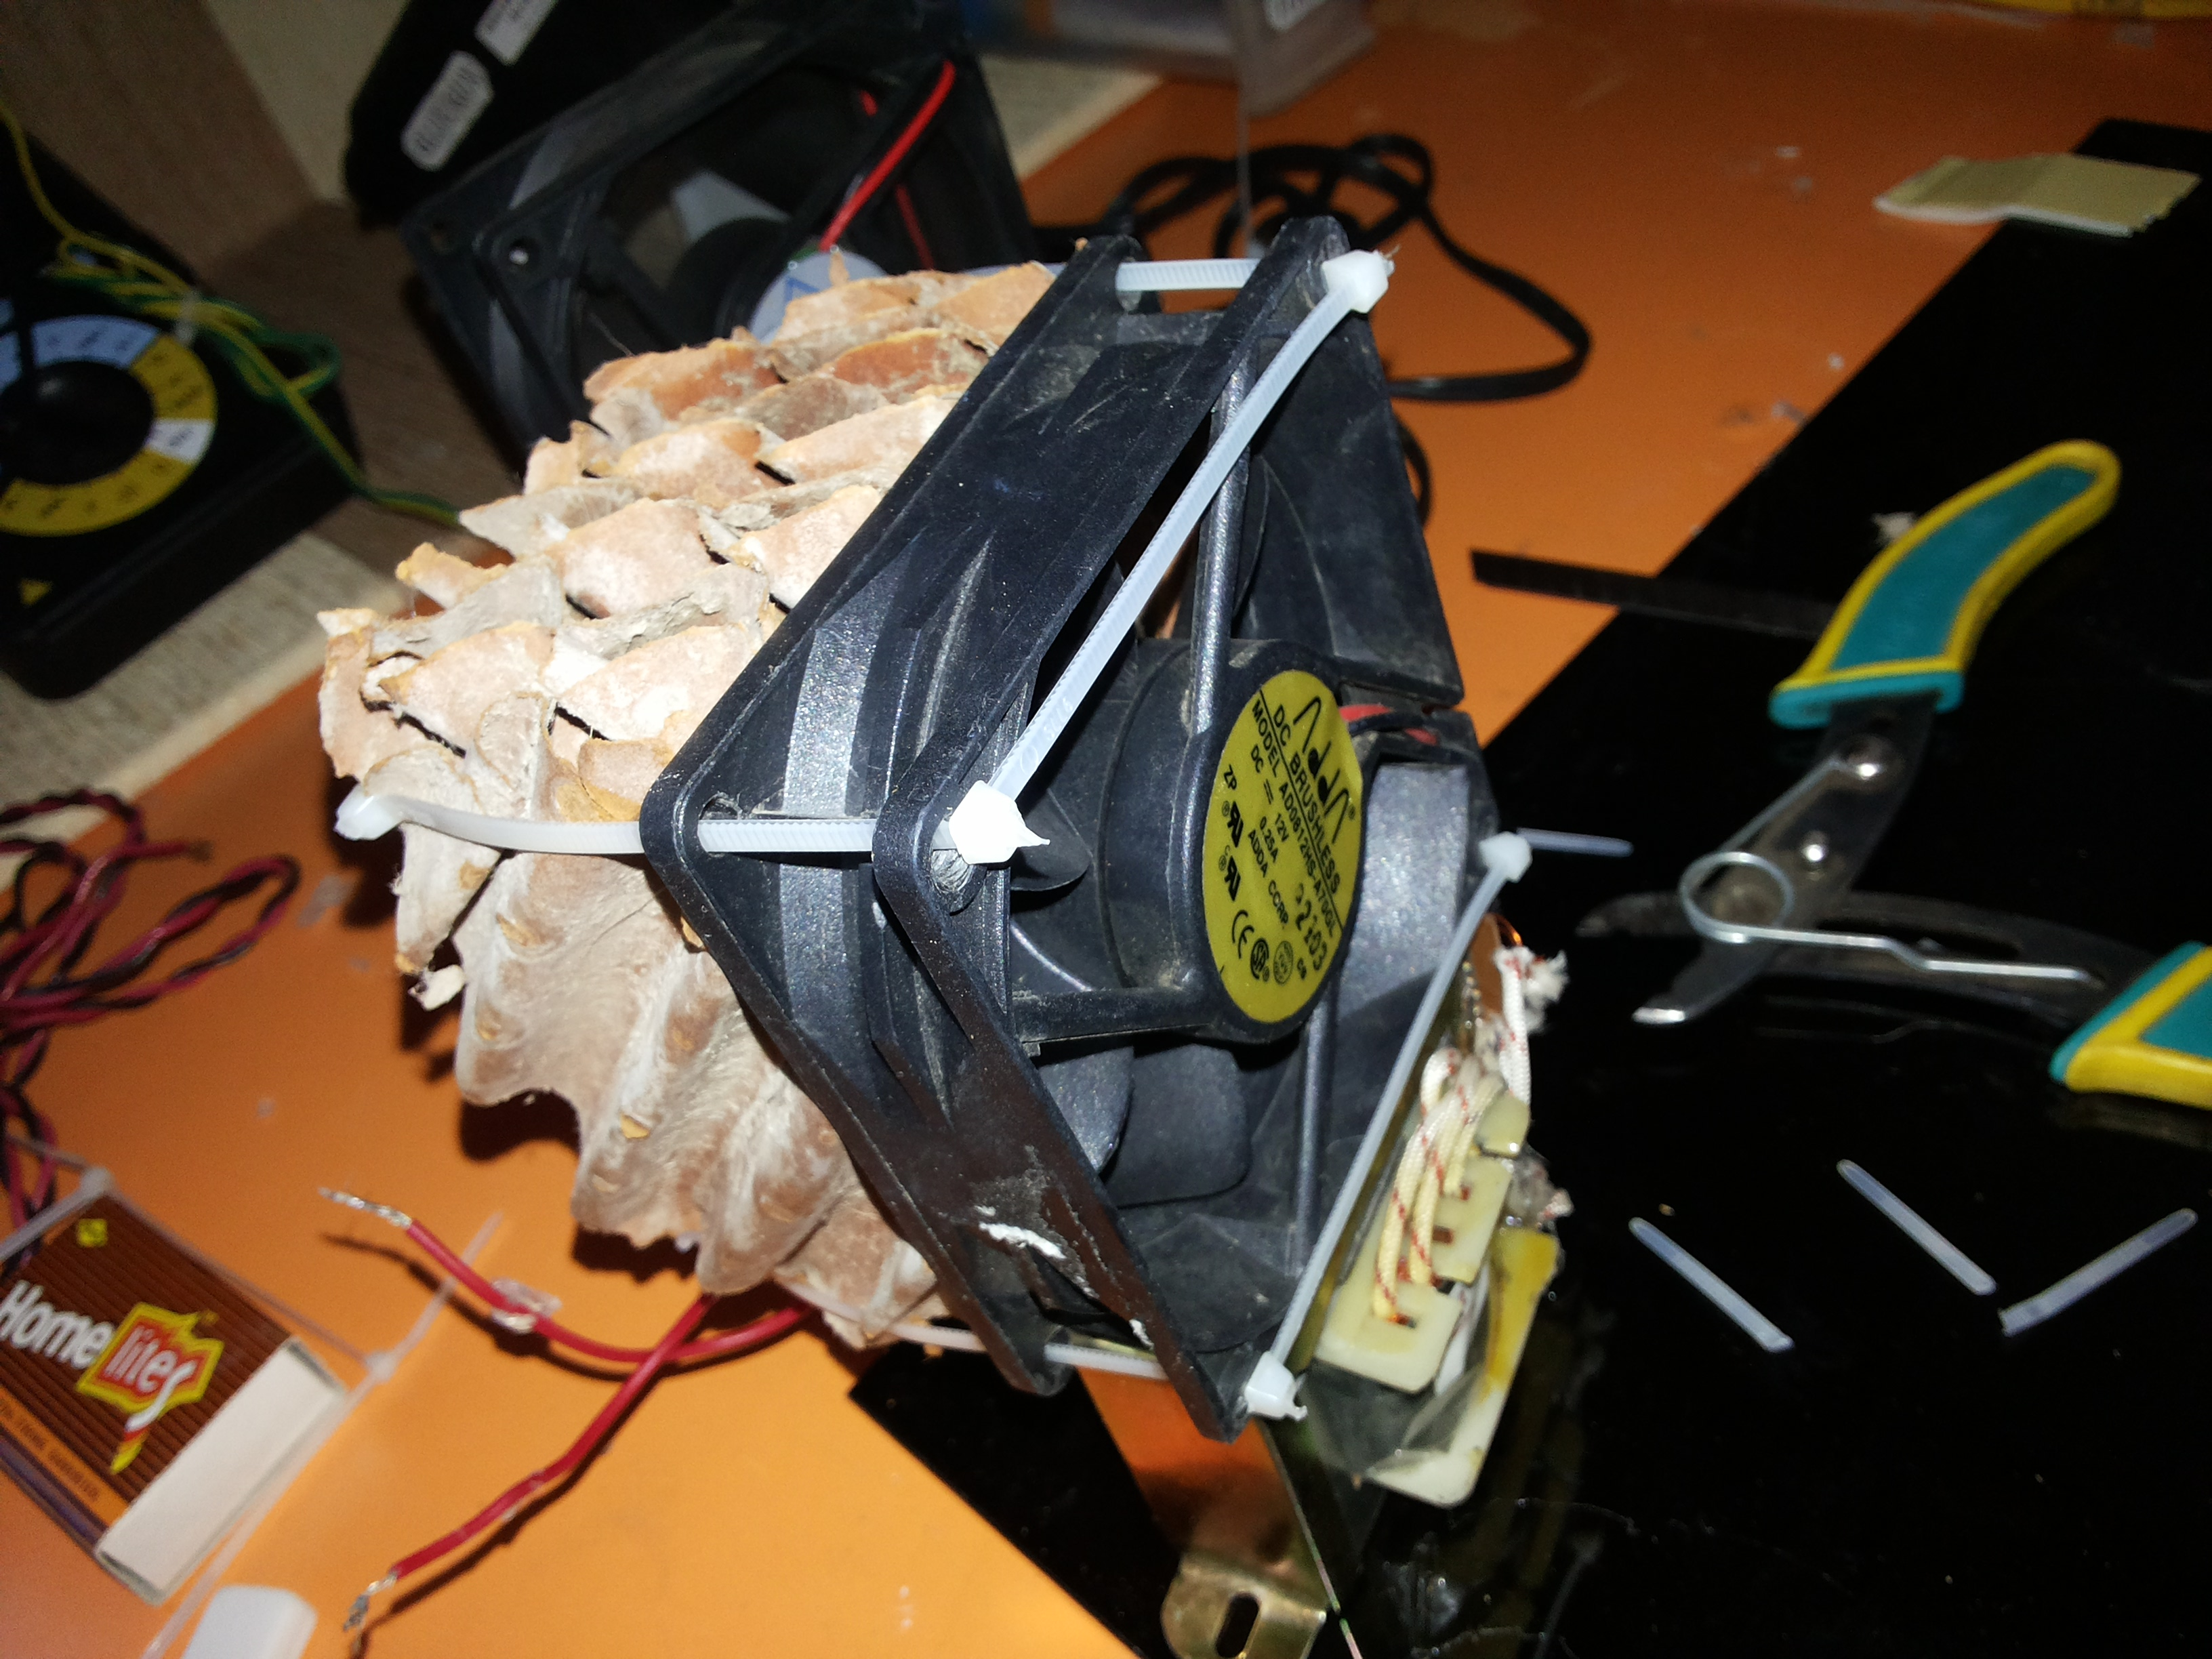 Picture of Attach the Cooling Pad to the Fan